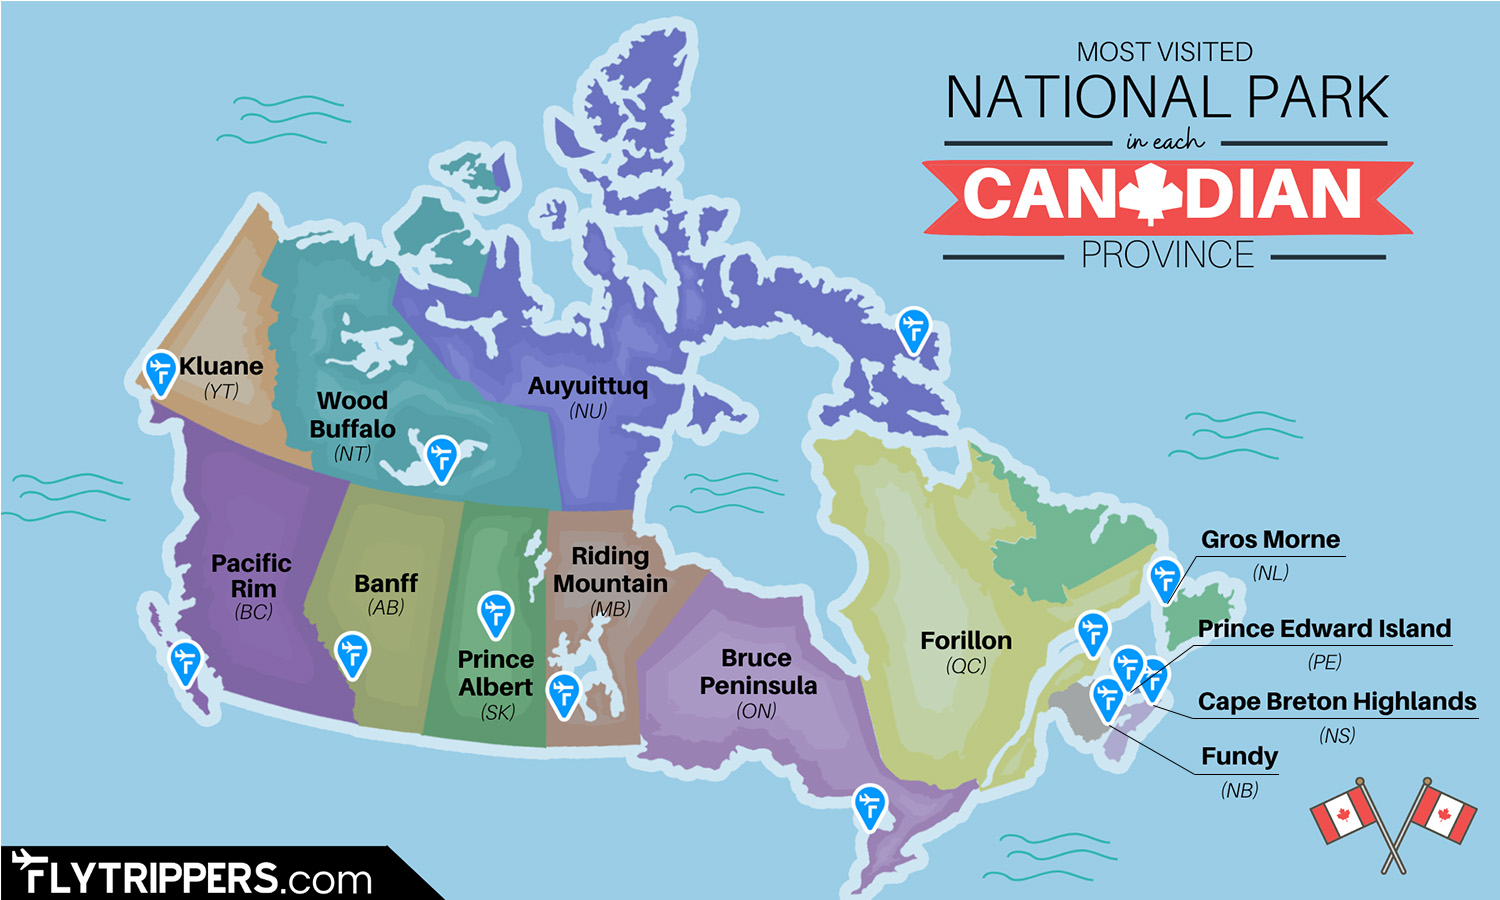 You are currently viewing The Most Visited National Park In Each Canadian Province On One Cool Map